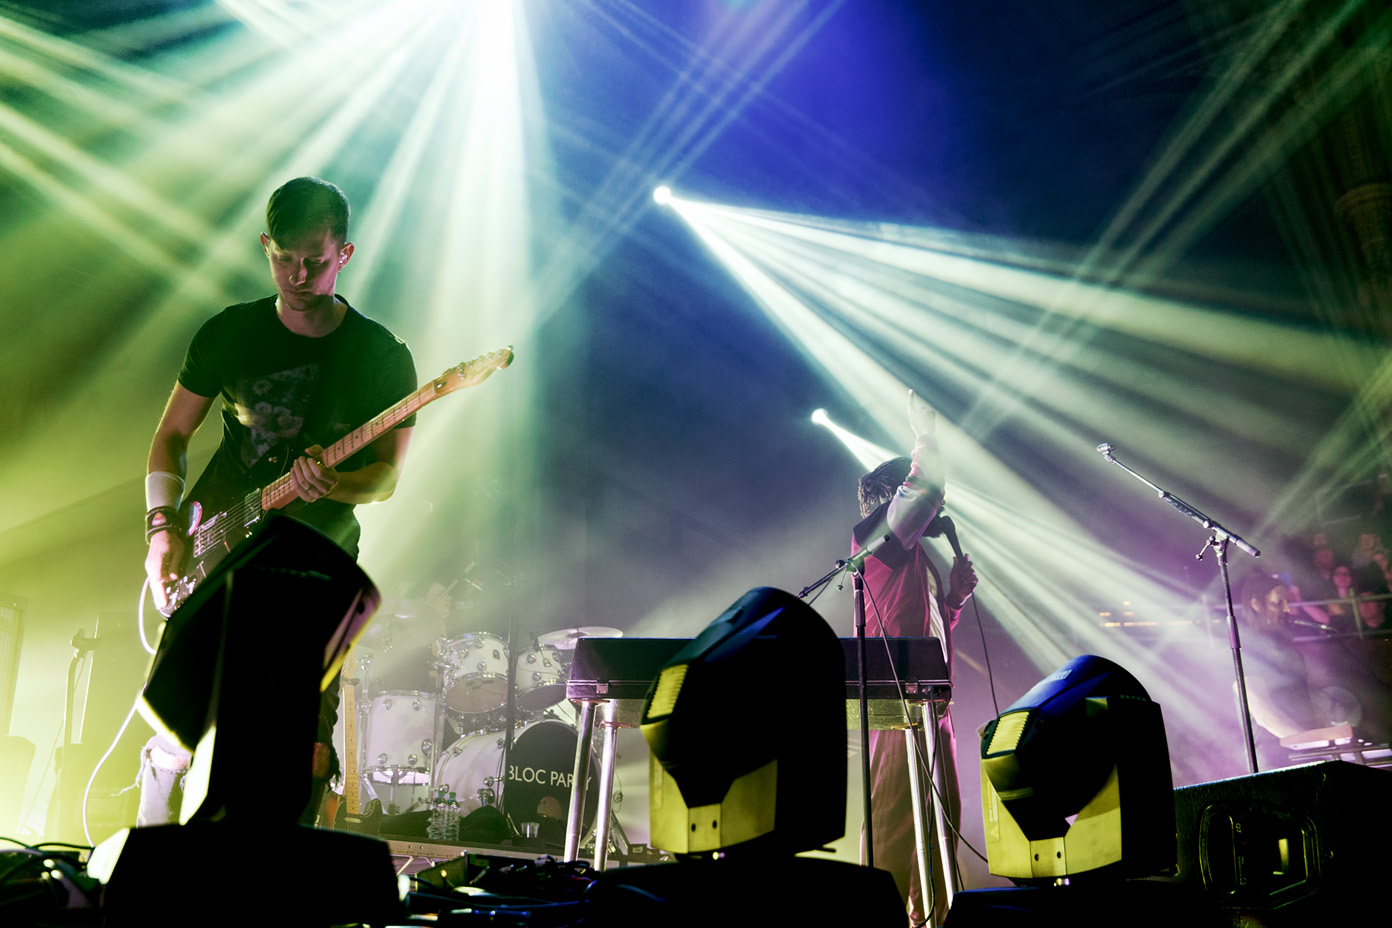 Bloc Party headline at the Albert Hall Manchester on 8 February 2017